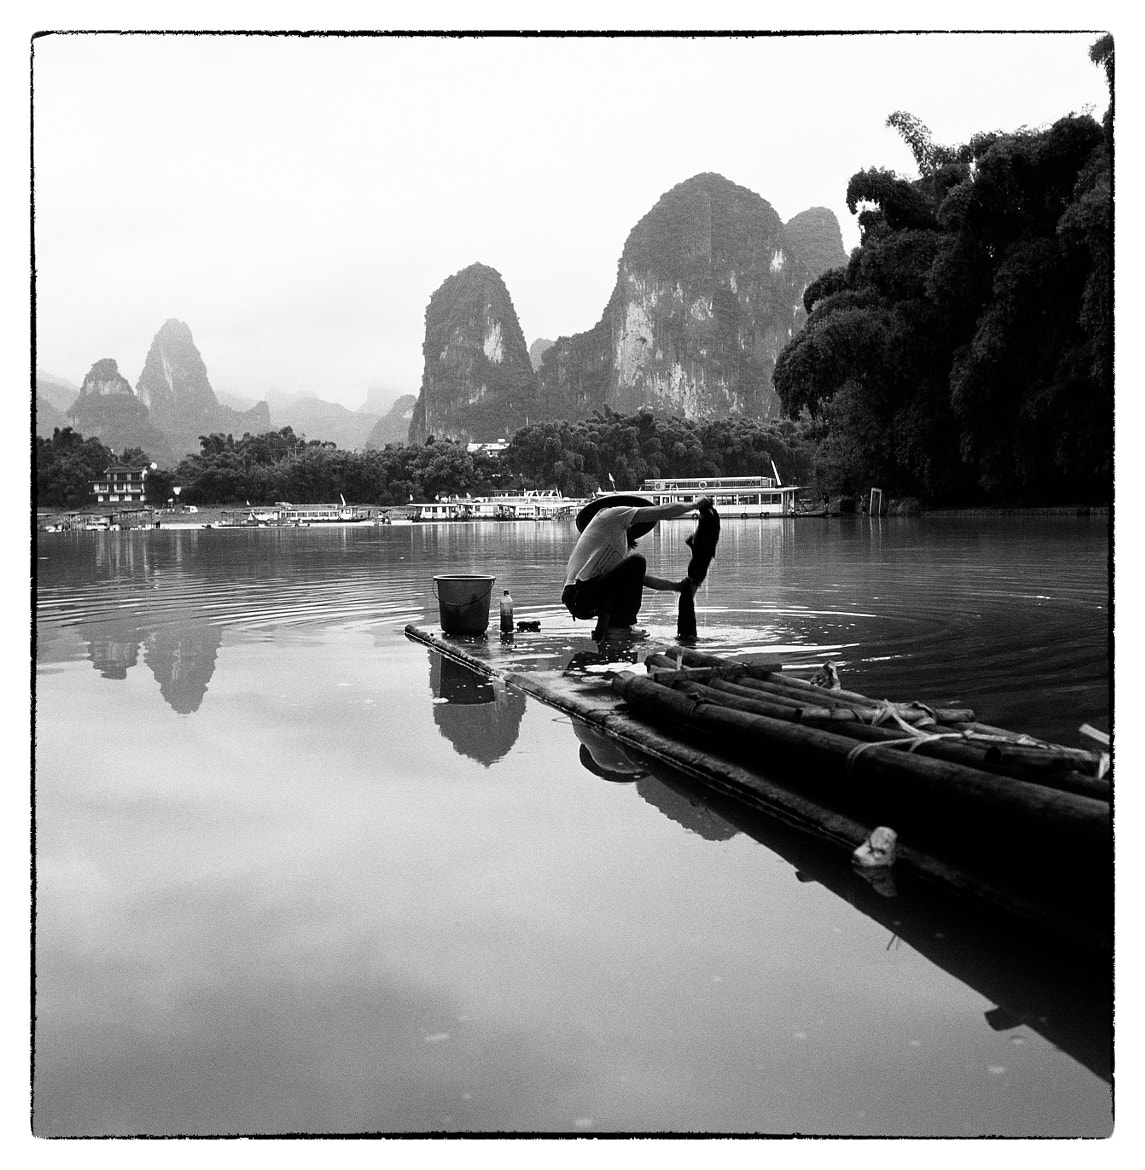 Photograph 洗衣 by Shan LeiGuang on 500px